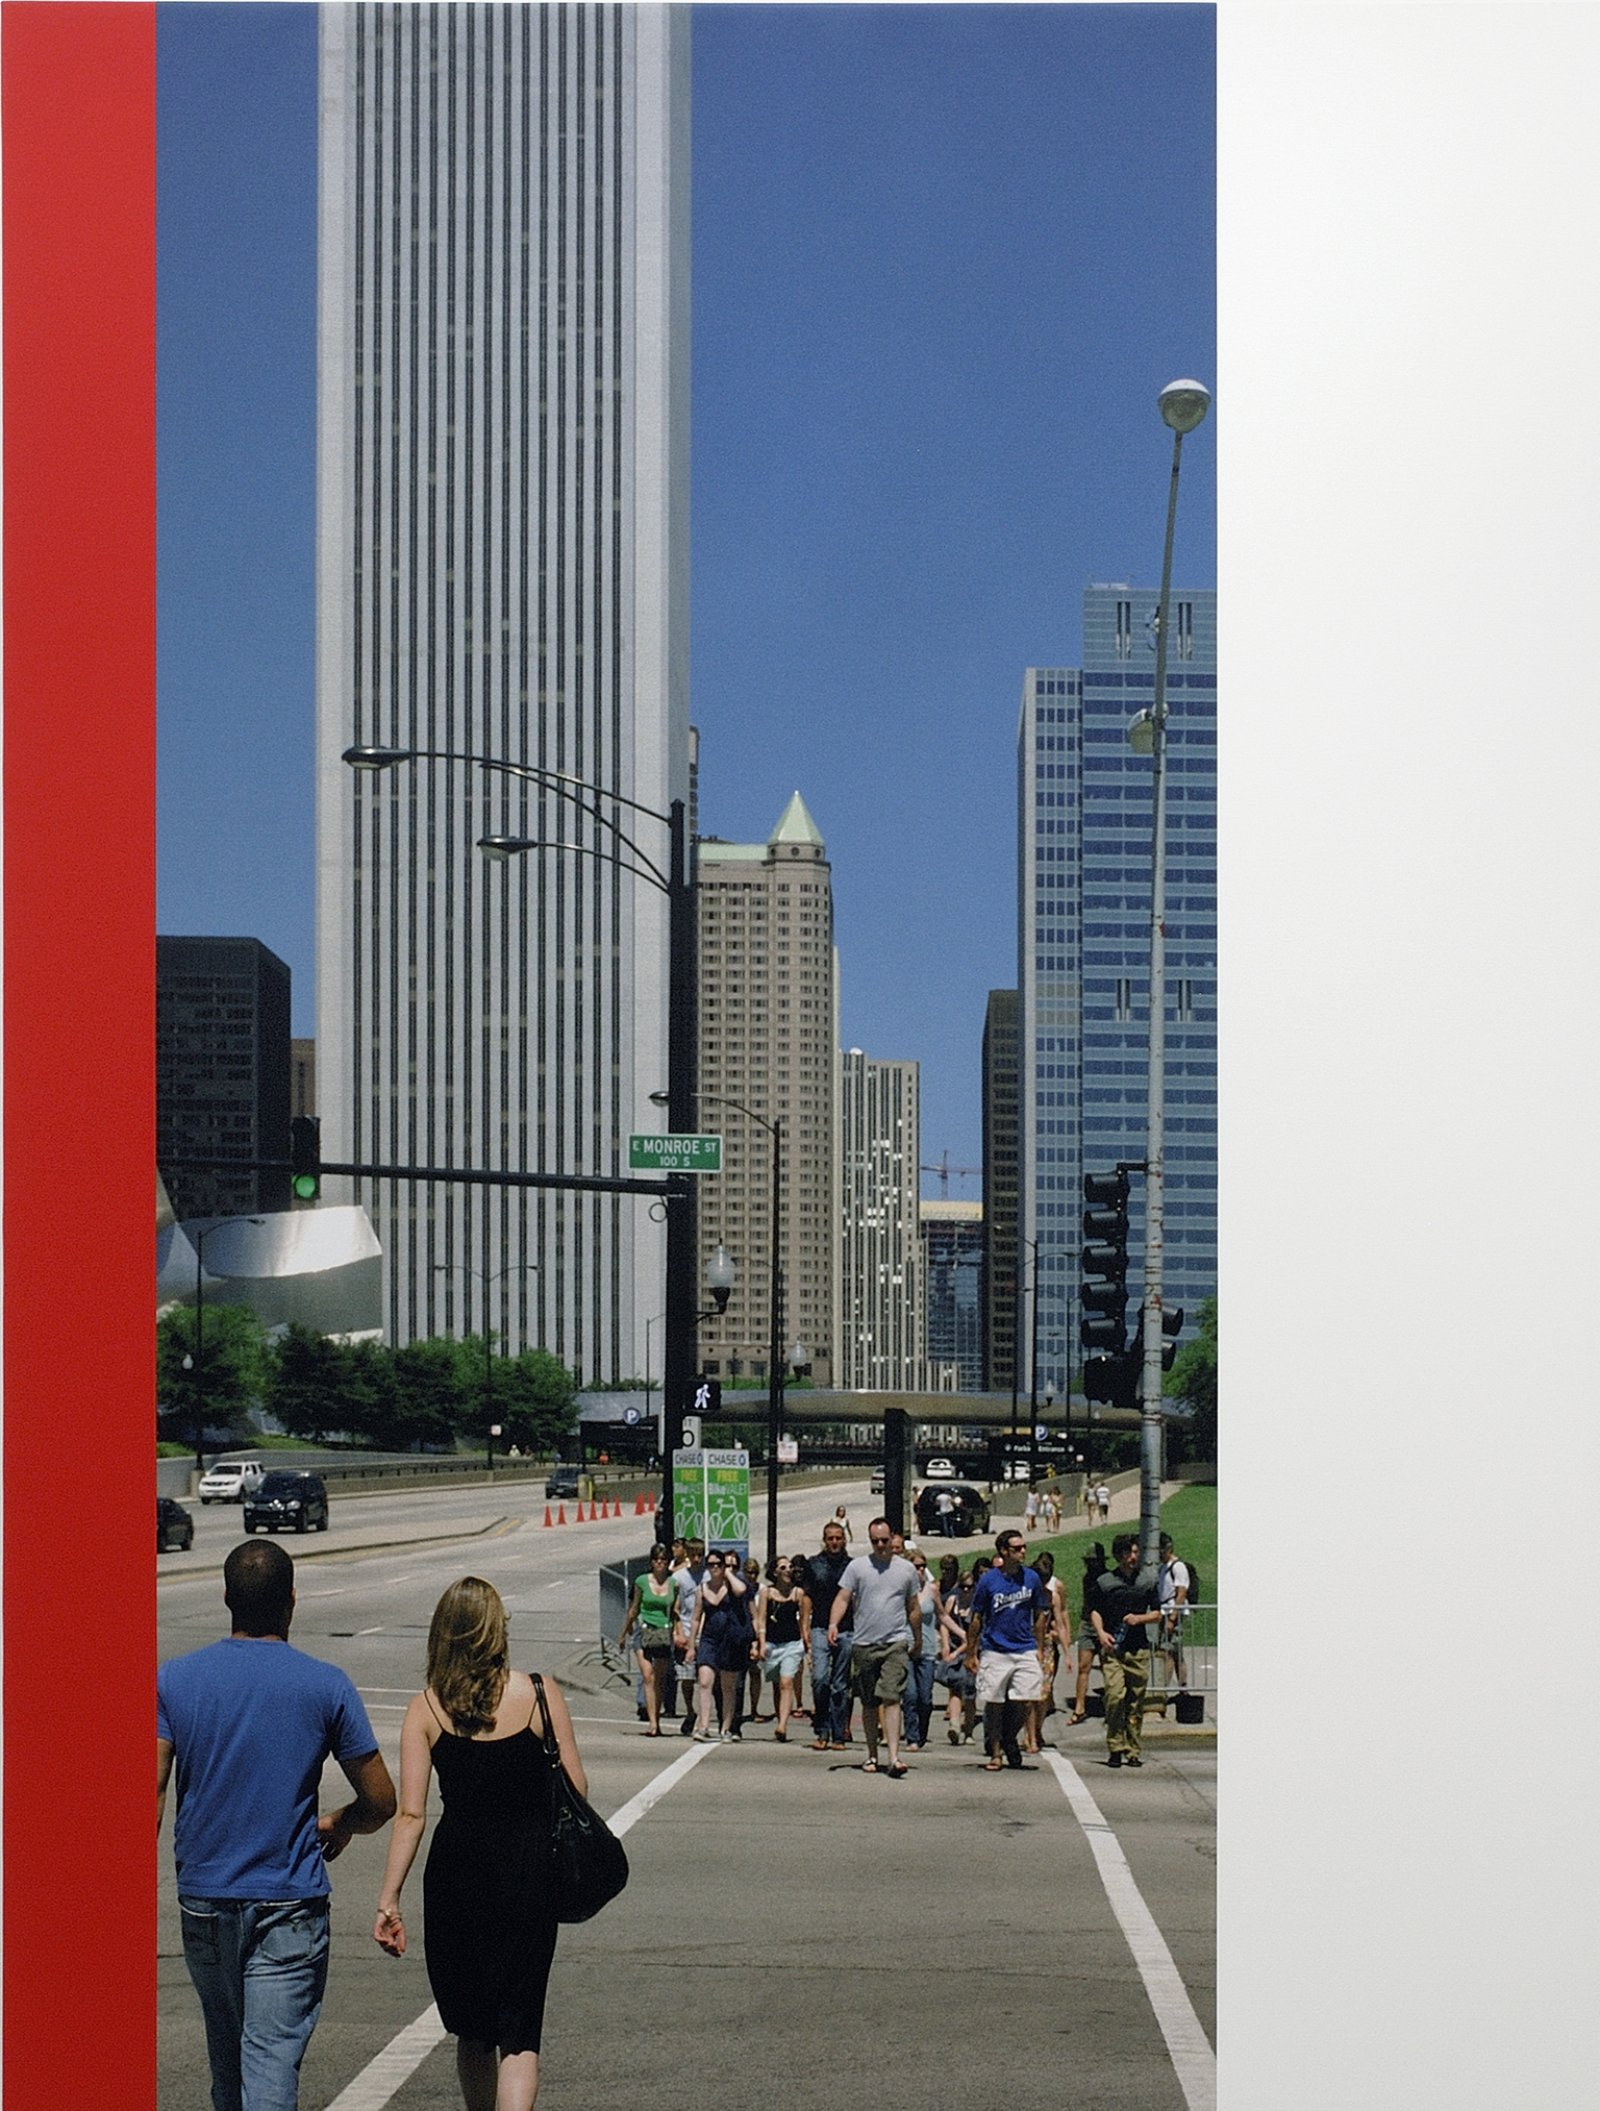 Ian Wallace, Chicago Crosswalk, 2007, photolaminate and acrylic on canvas, 96 x 72 in. (244 x 183 cm) by Ian Wallace